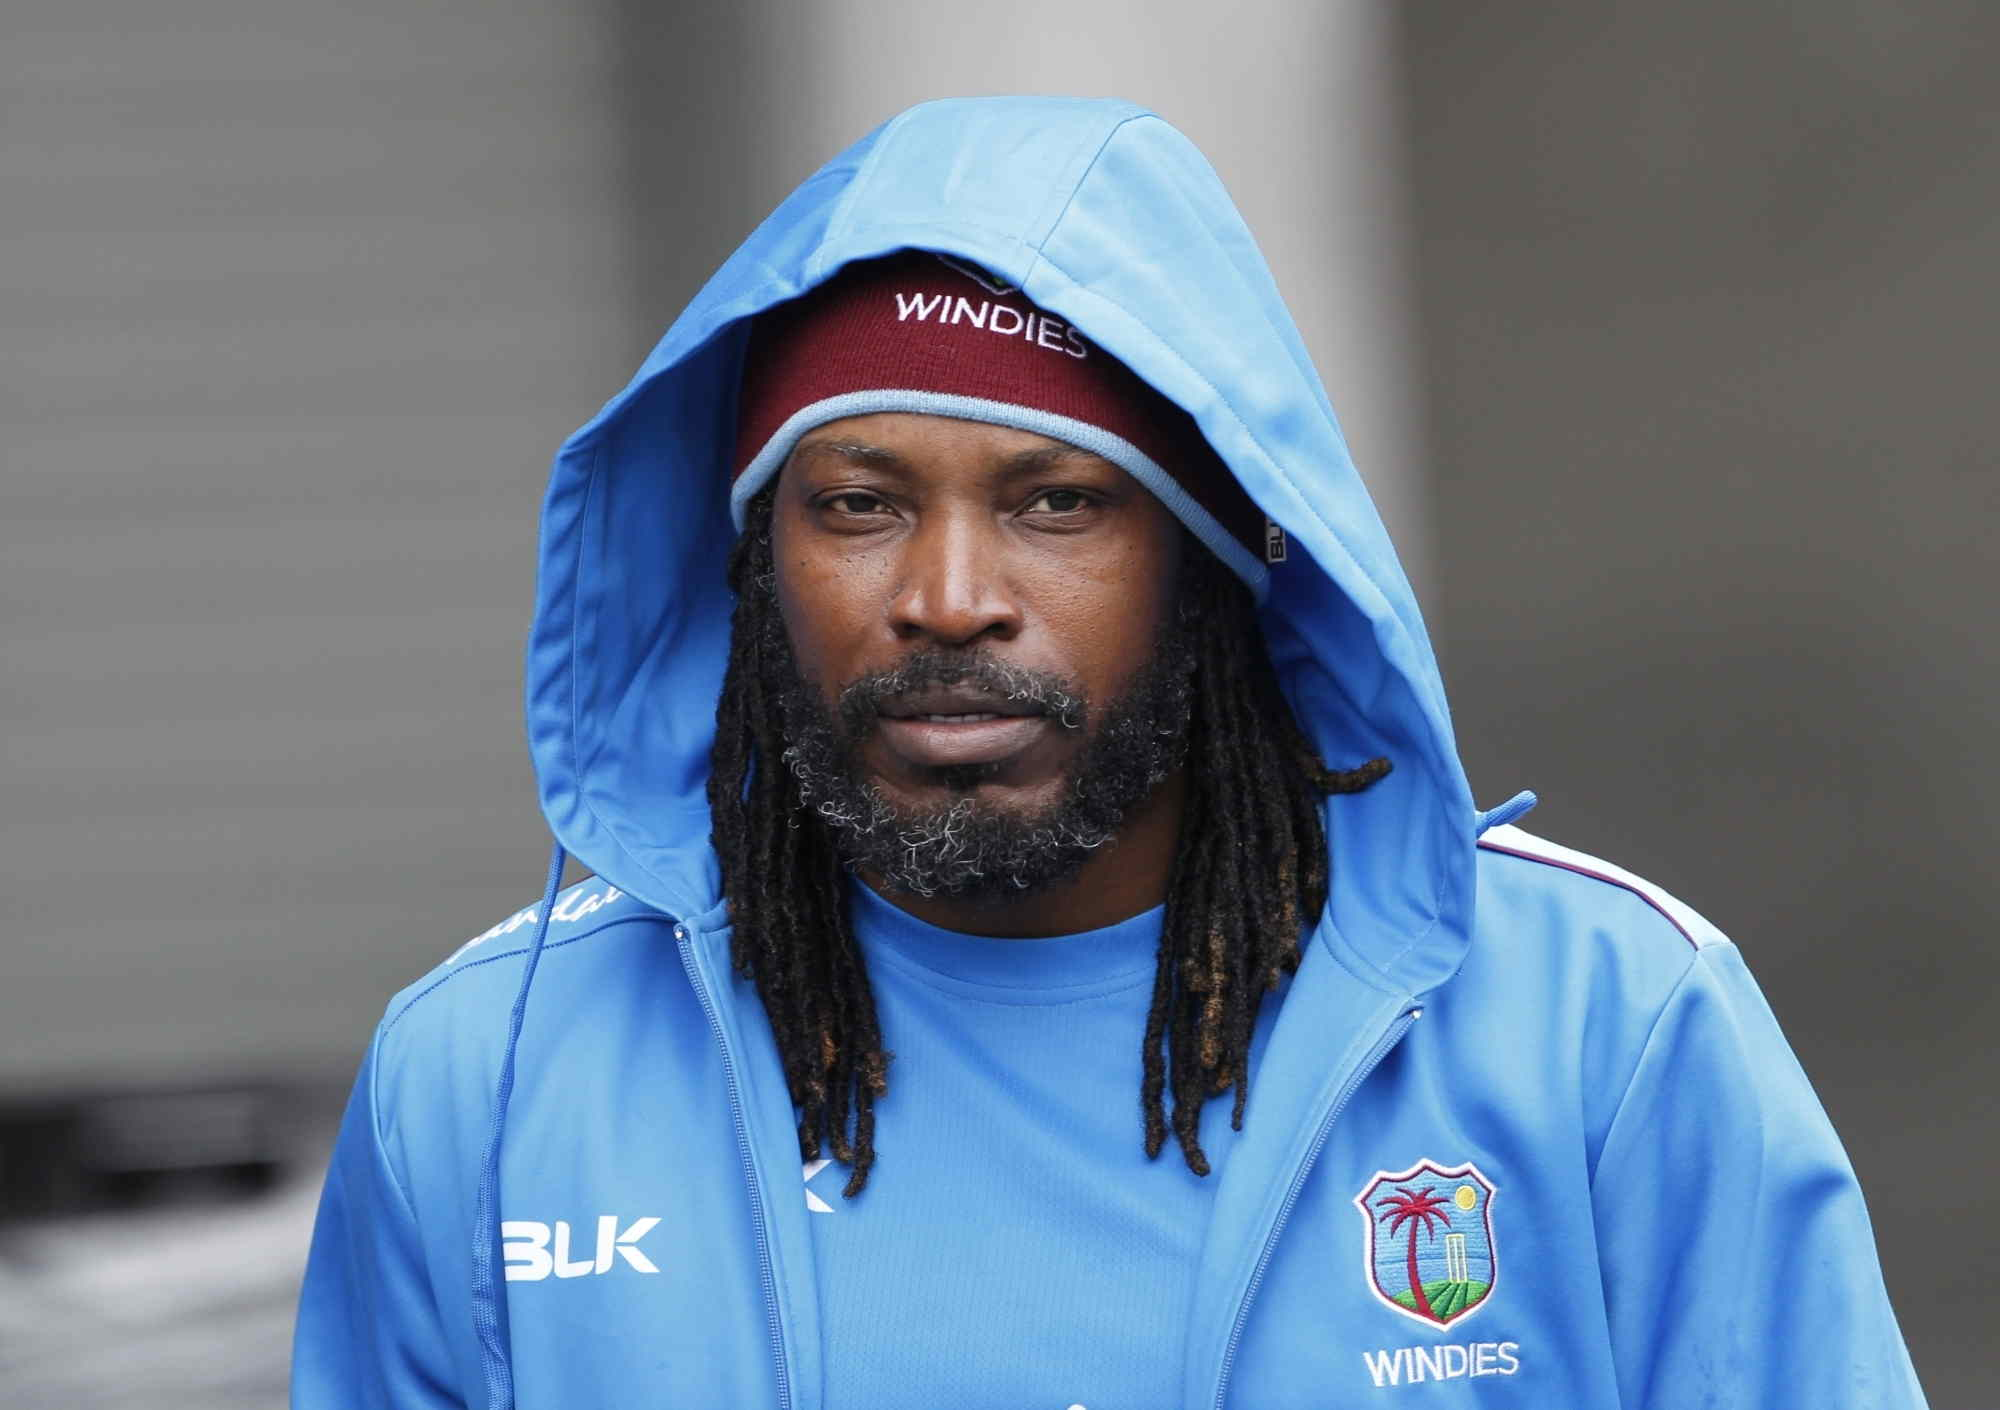 The 41-year-old West Indies opener has played 133 matches over 13 seasons and has been the top draw in cash-rich tournament, scoring over 4800 runs